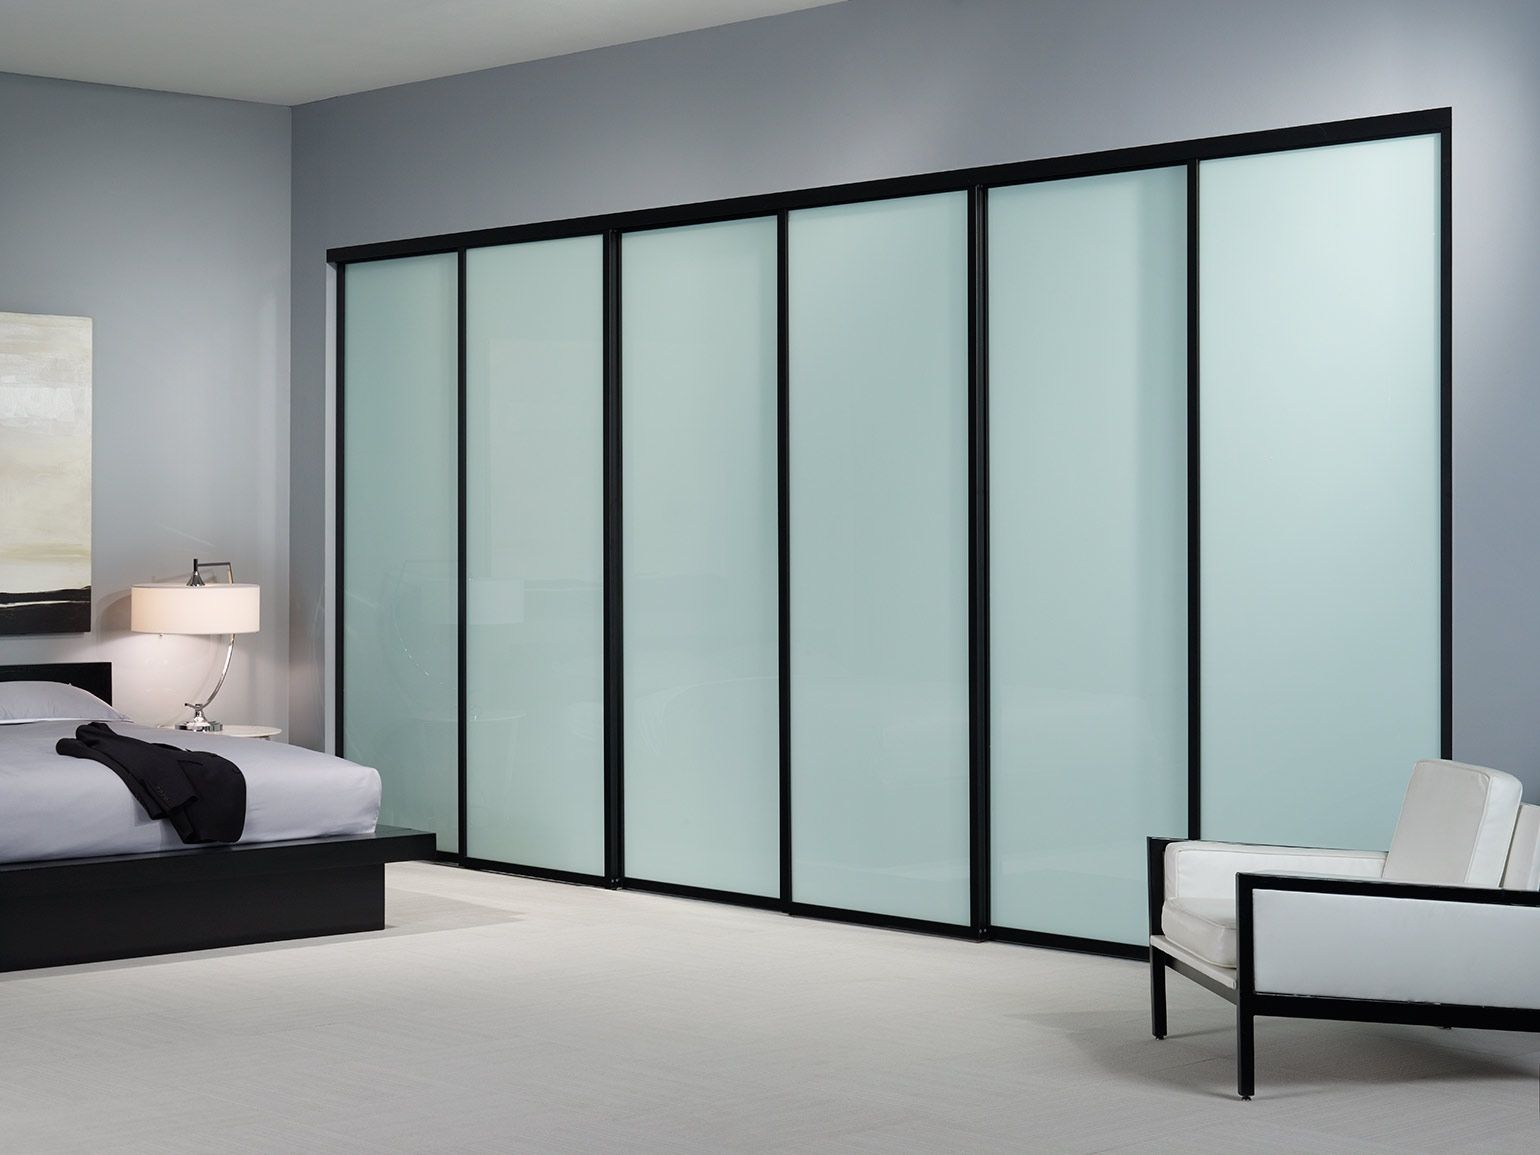 Sliding Glass Closet Doors Are Perfect For Extra Large Closets Installed Here With Milky And Black Frame Finish